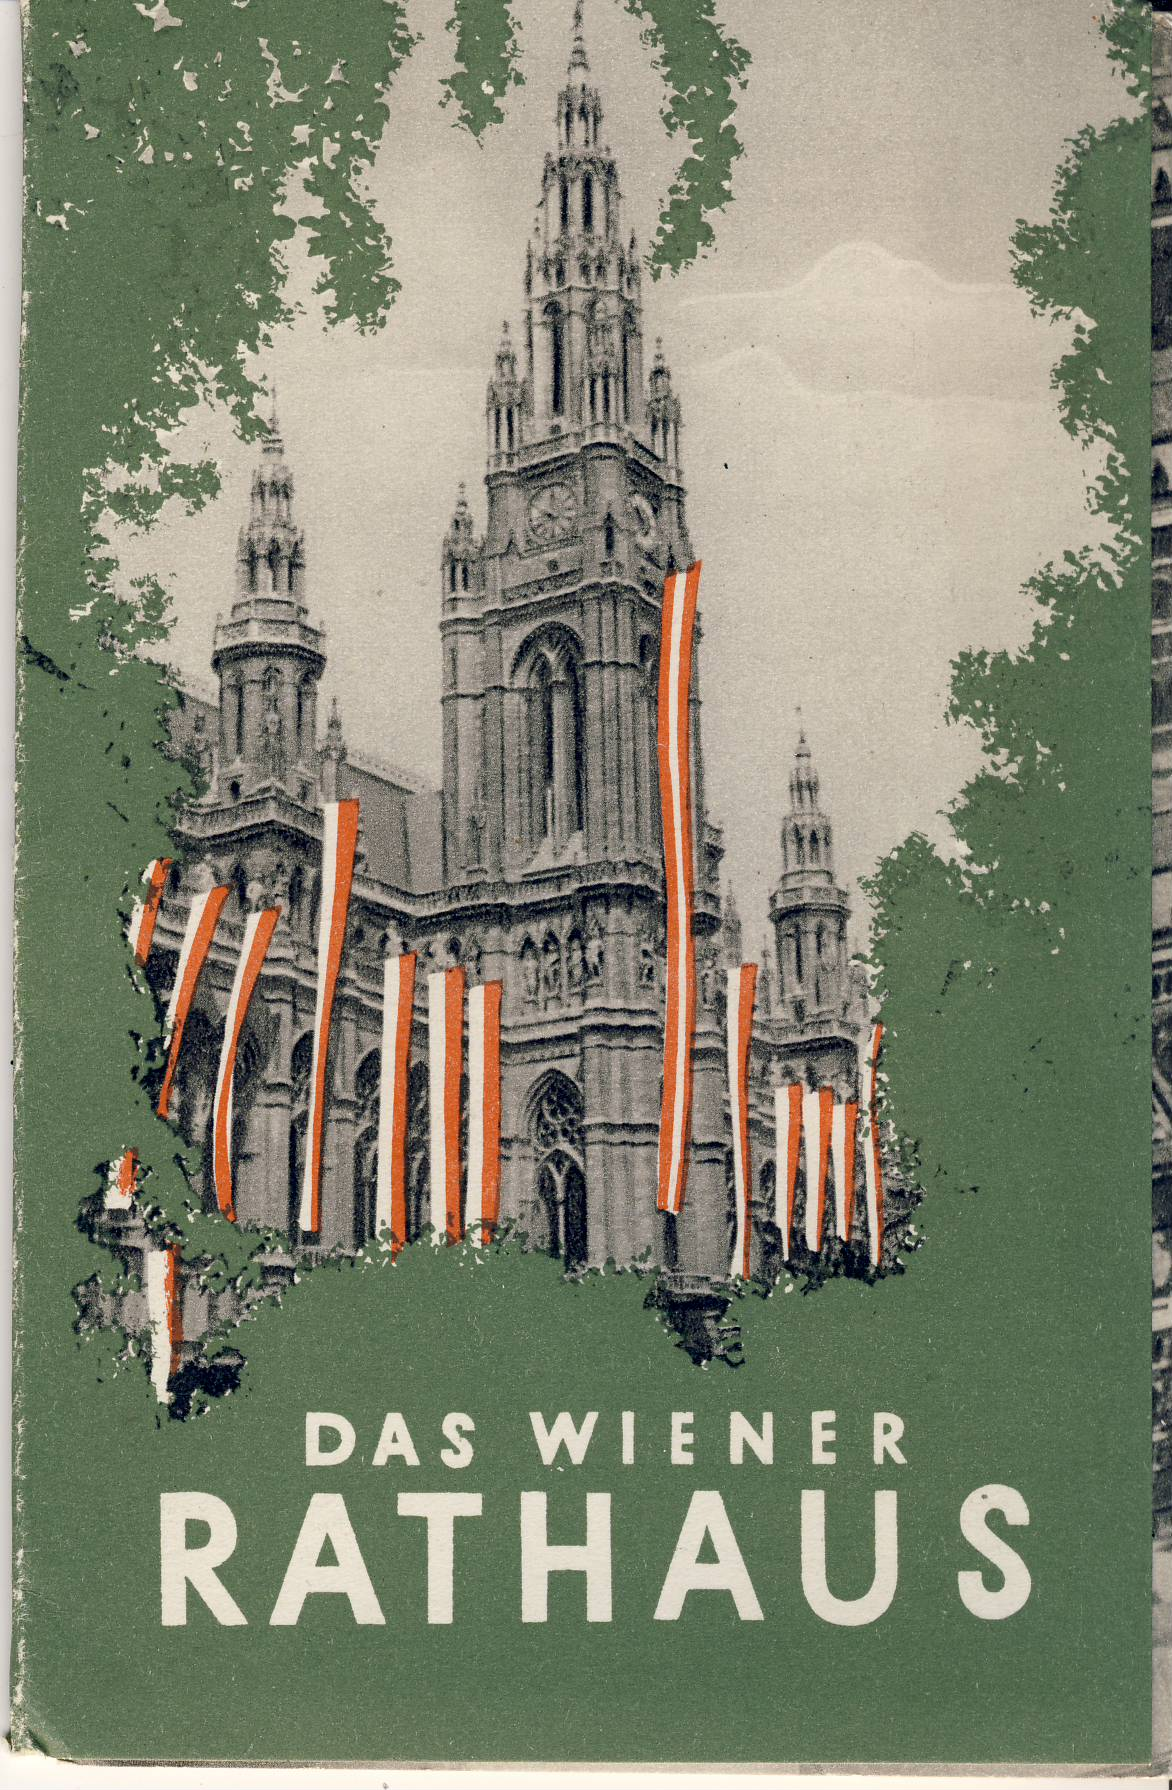 DAS WIENER RATHAUS vintage fold out postcard booklet DATED 1955 refS5 FOLDOUT CONTAINS 7 POSTCARDS perforated edges ready to remove and use - reverse sides and inside covers is text info - measures approx  15cm x  9cm folded - pre-owned in very good condition.